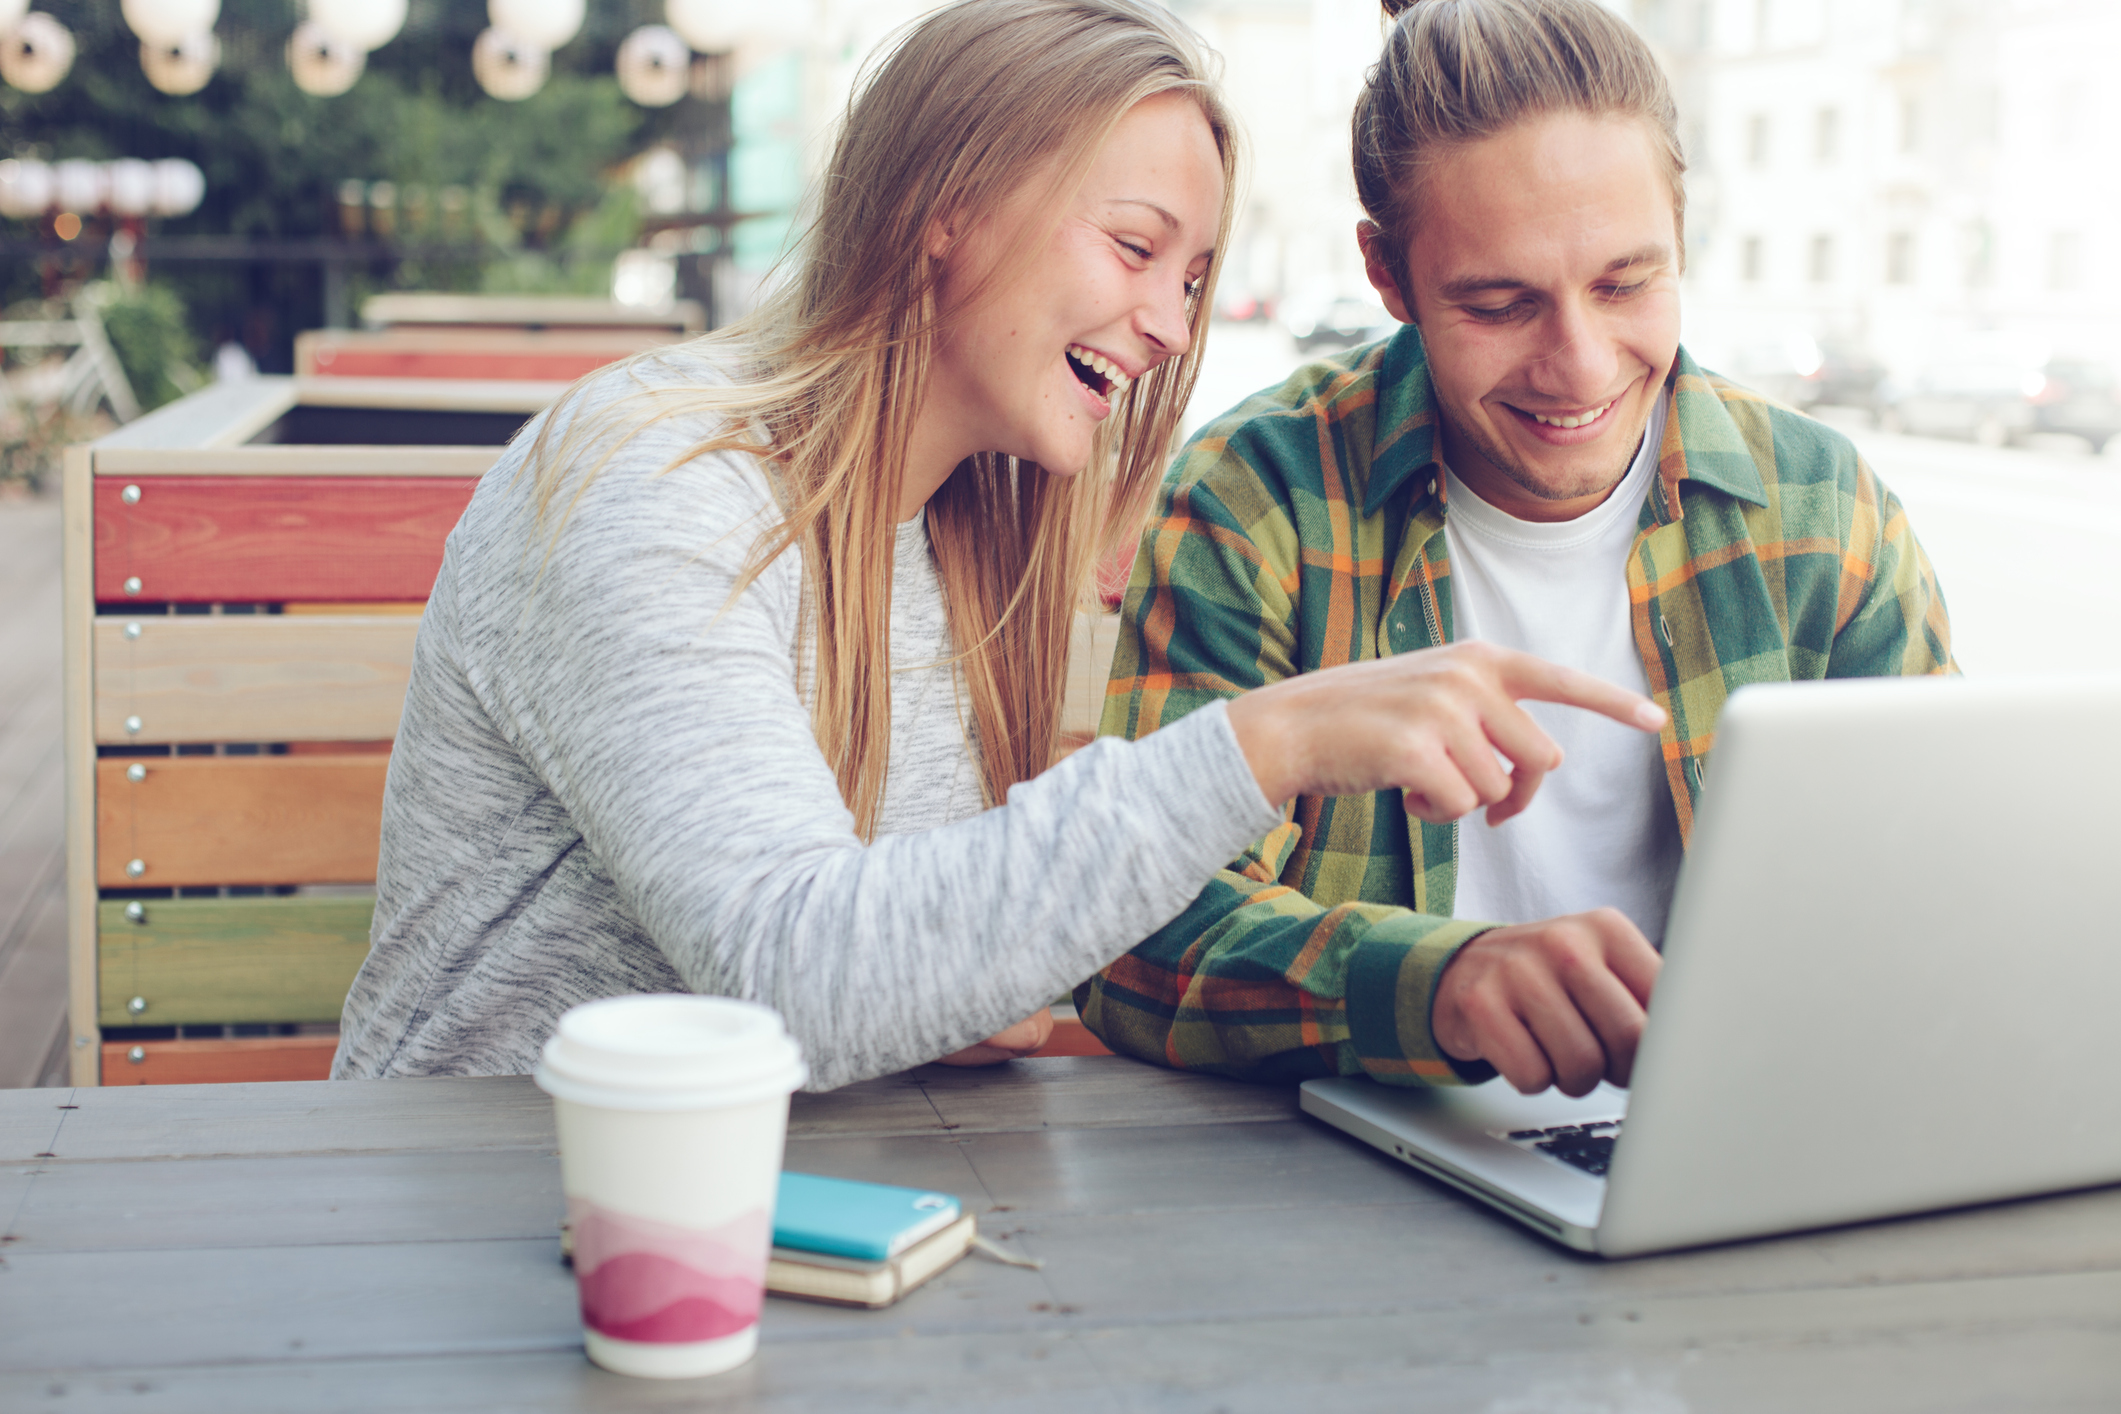 Man and woman sitting in street cafe with laptop